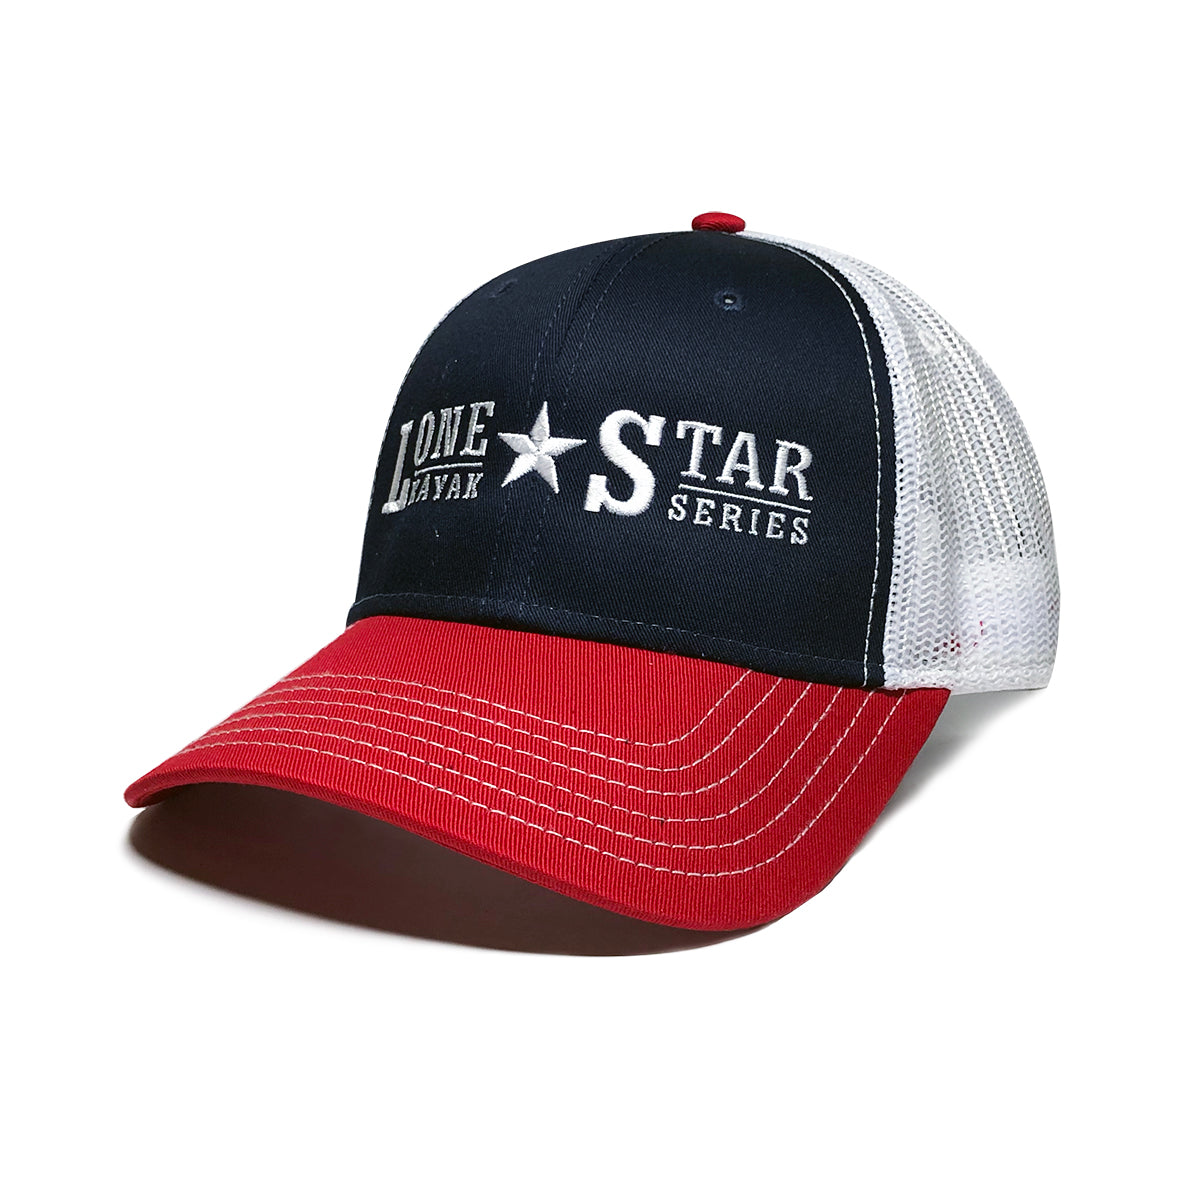 Lone Star Kayak Series Hat: Red/Navy/White